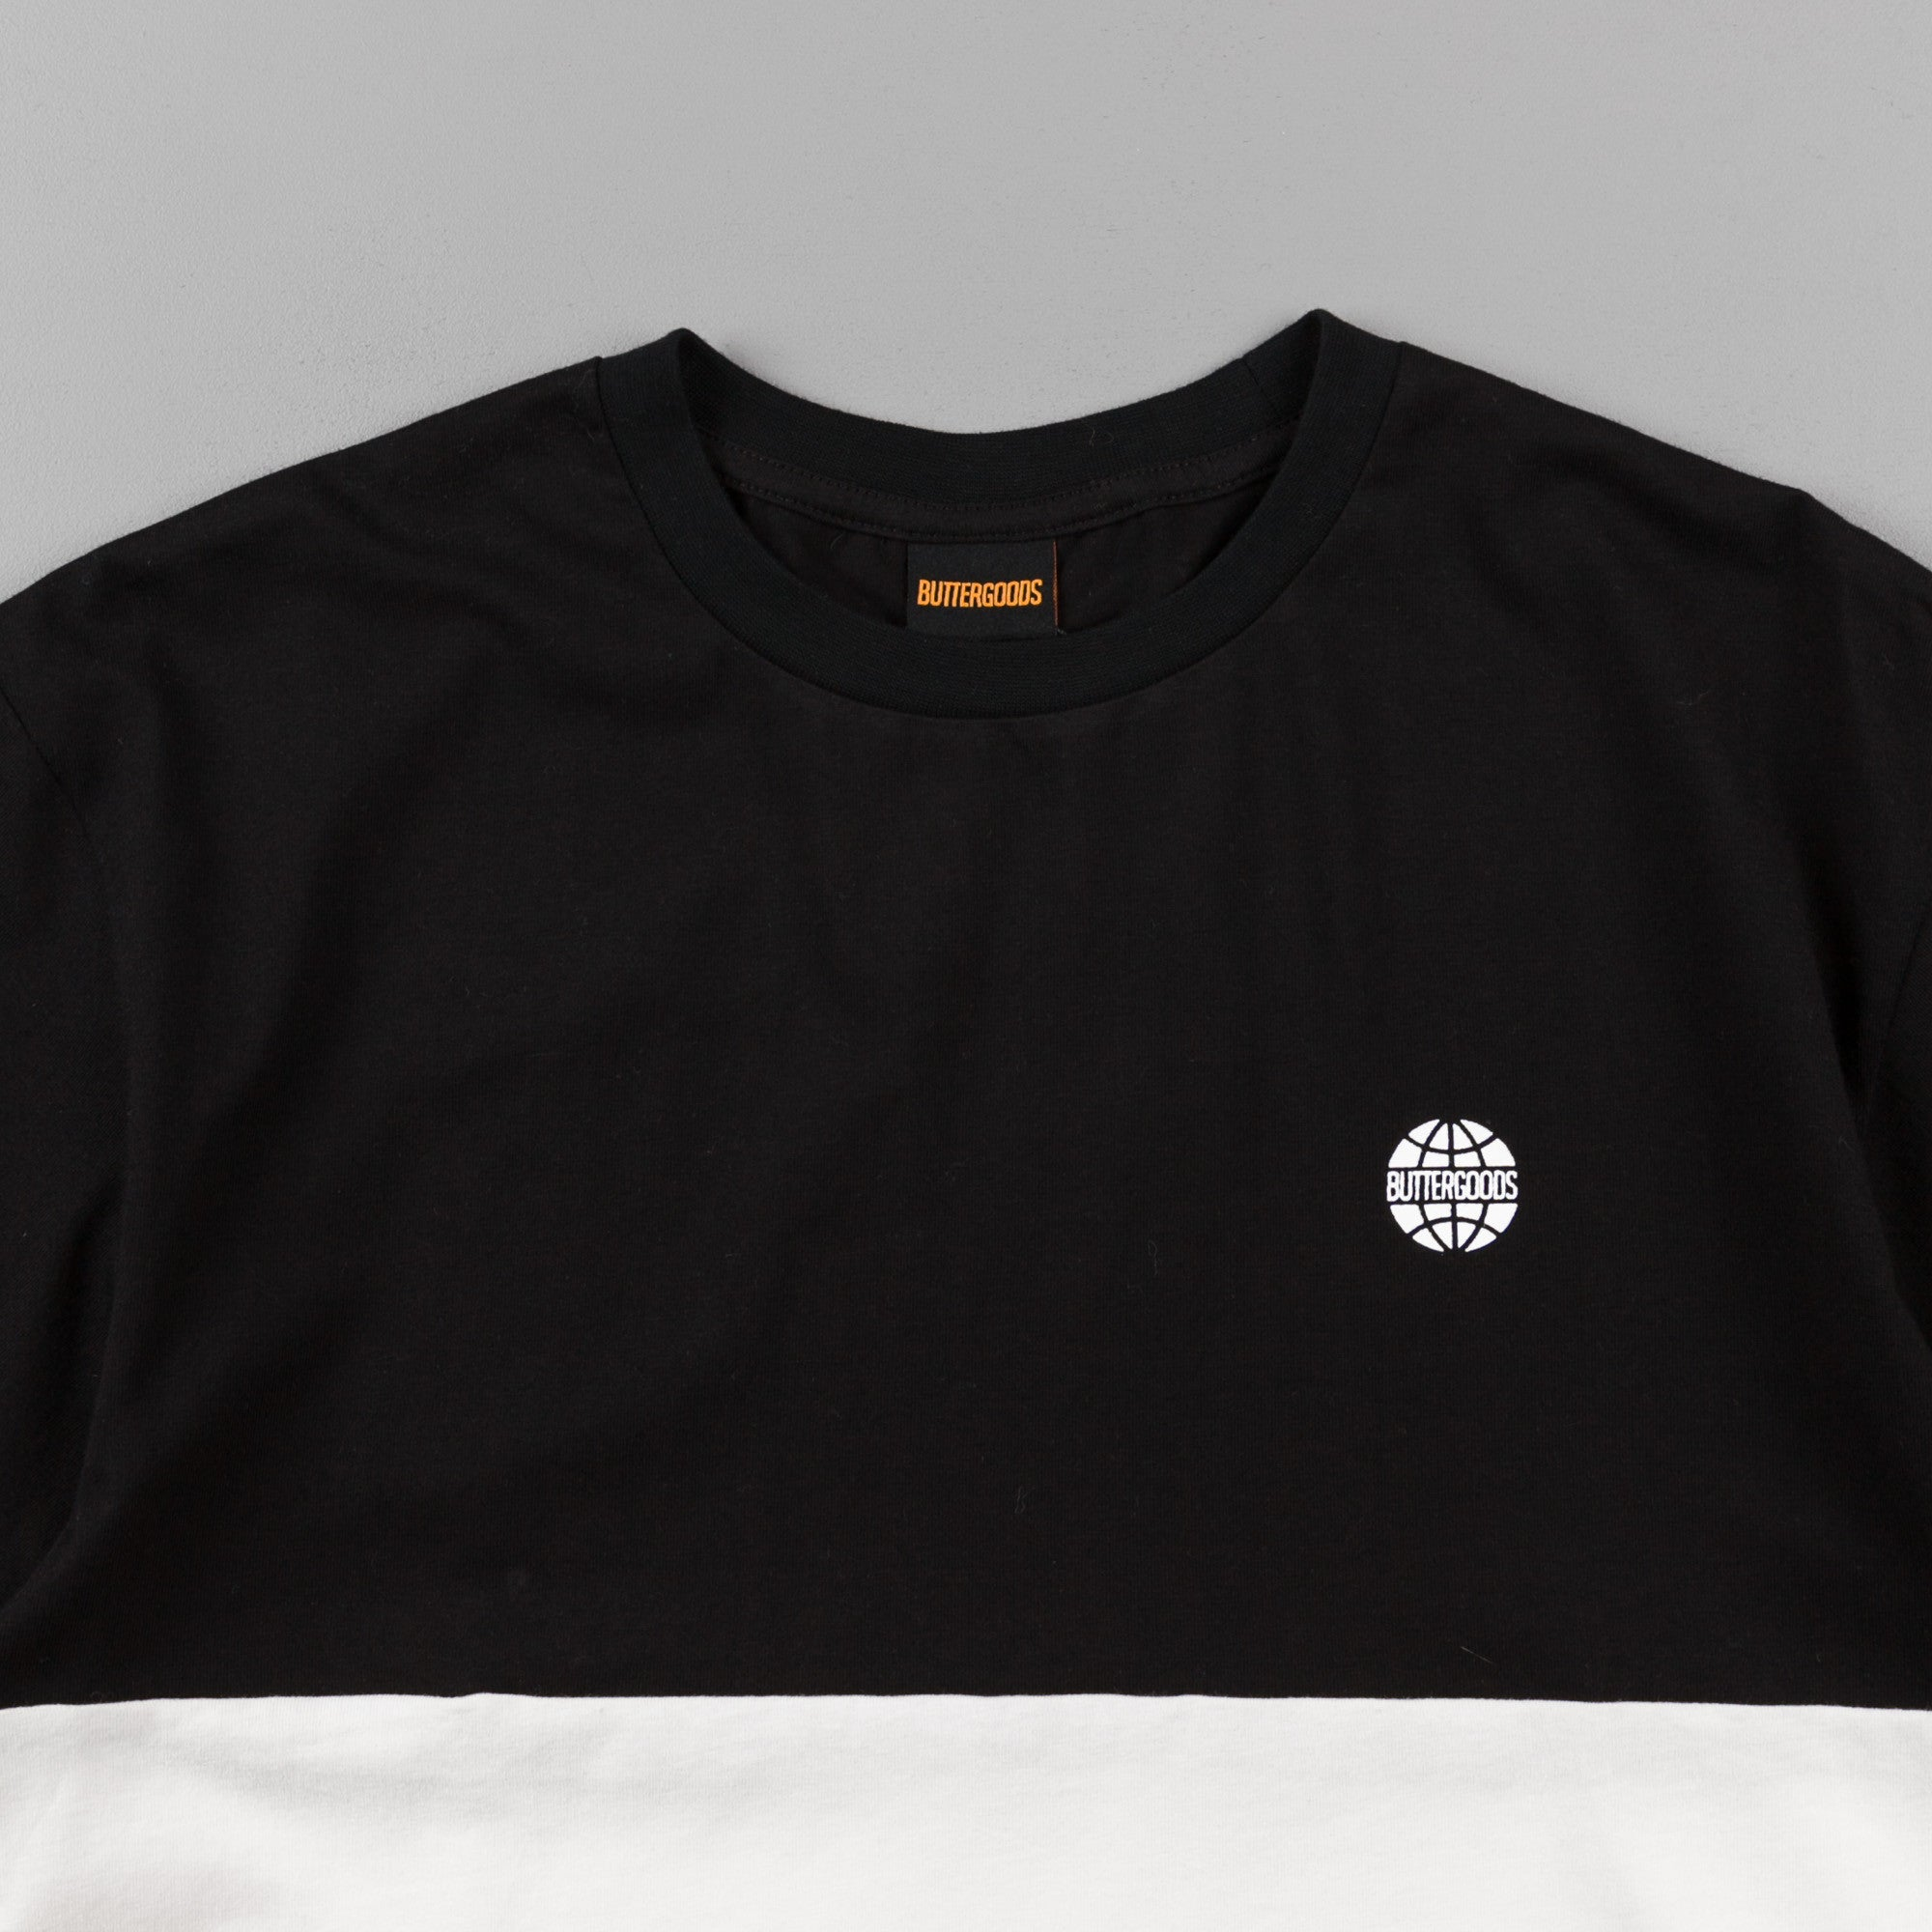 Butter Goods Tri-Block T-Shirt - Black / White / Yellow